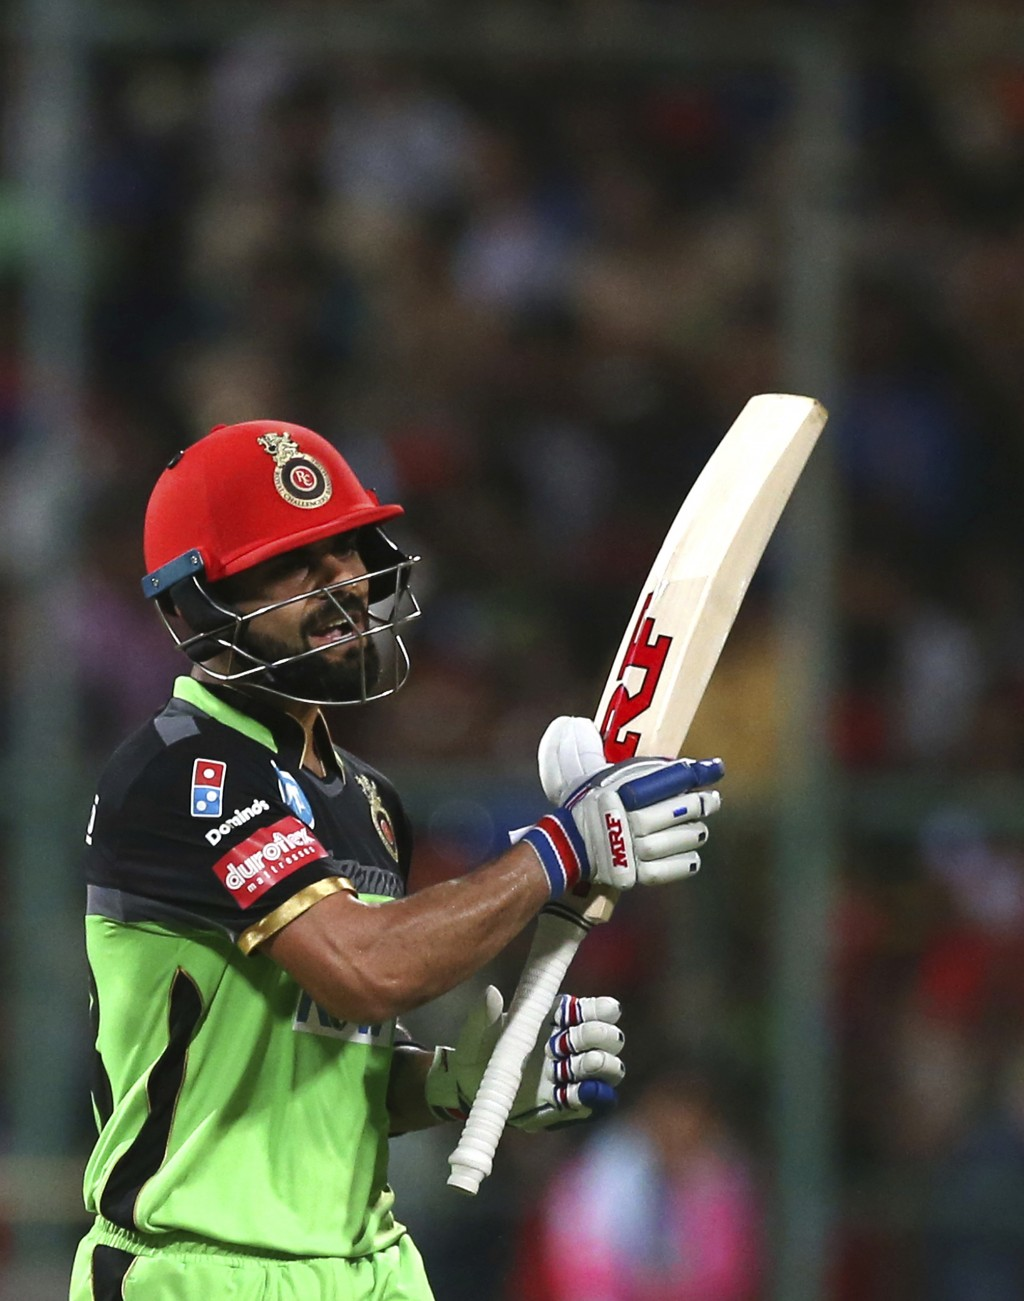 Royal Challengers Bangalore captain Virat Kohli reacts as he leaves the ground after losing his wicket during the VIVO IPL Twenty20 cricket match agai